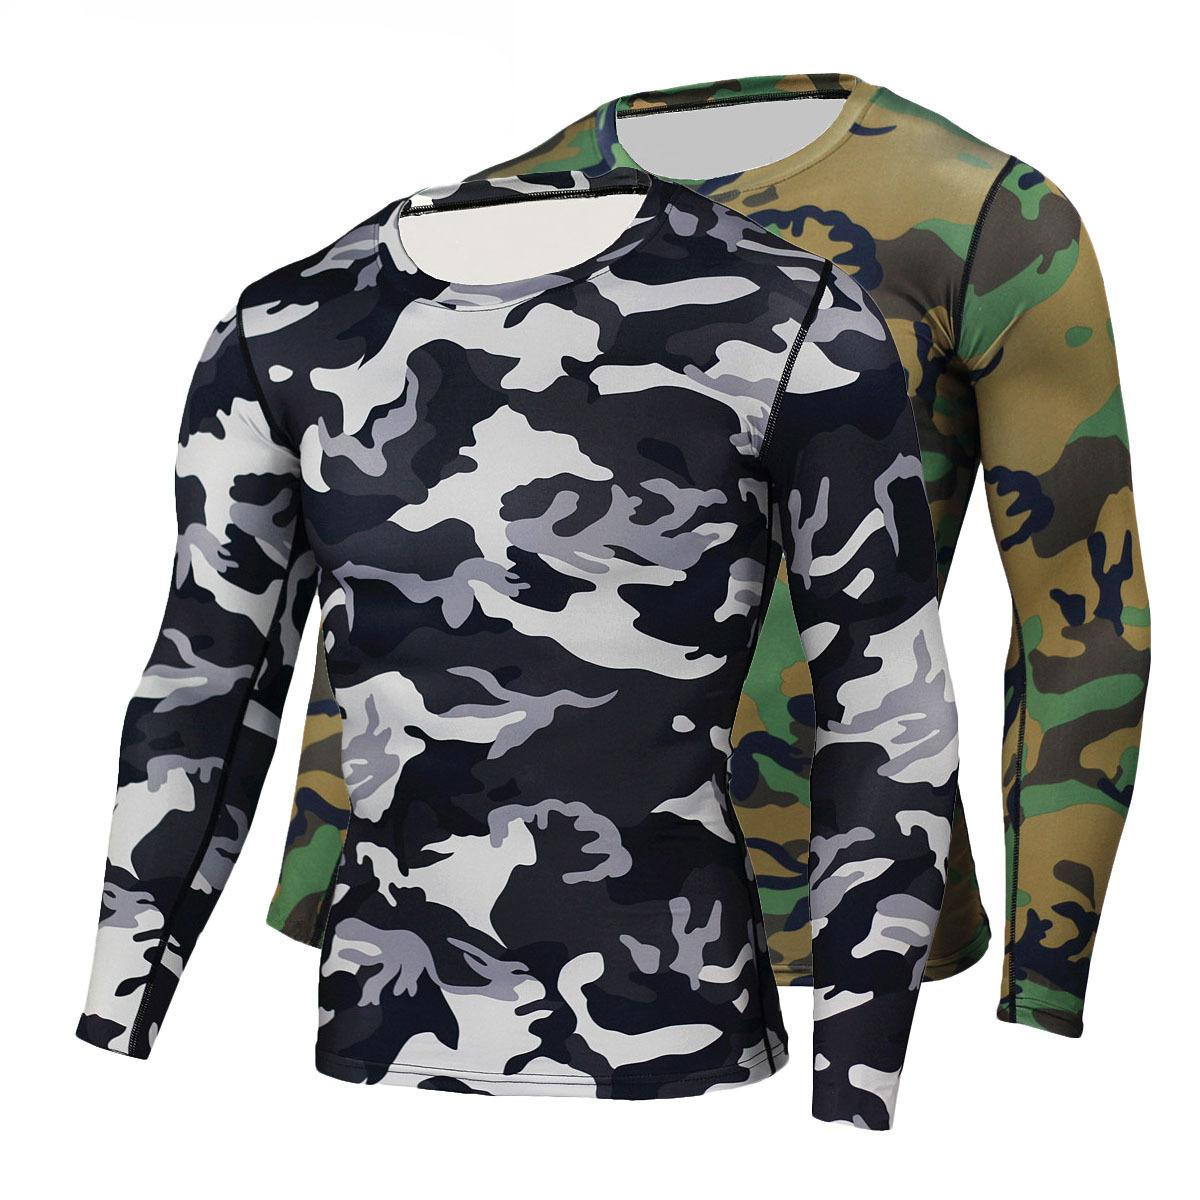 25d5811d4 New High Quality Camouflage Military Compression T Shirt Tights Fitness Men  Quick Dry Camo Long Sleeve T Shirts Crossfit Shirts Make Your Own Tee Shirt  ...